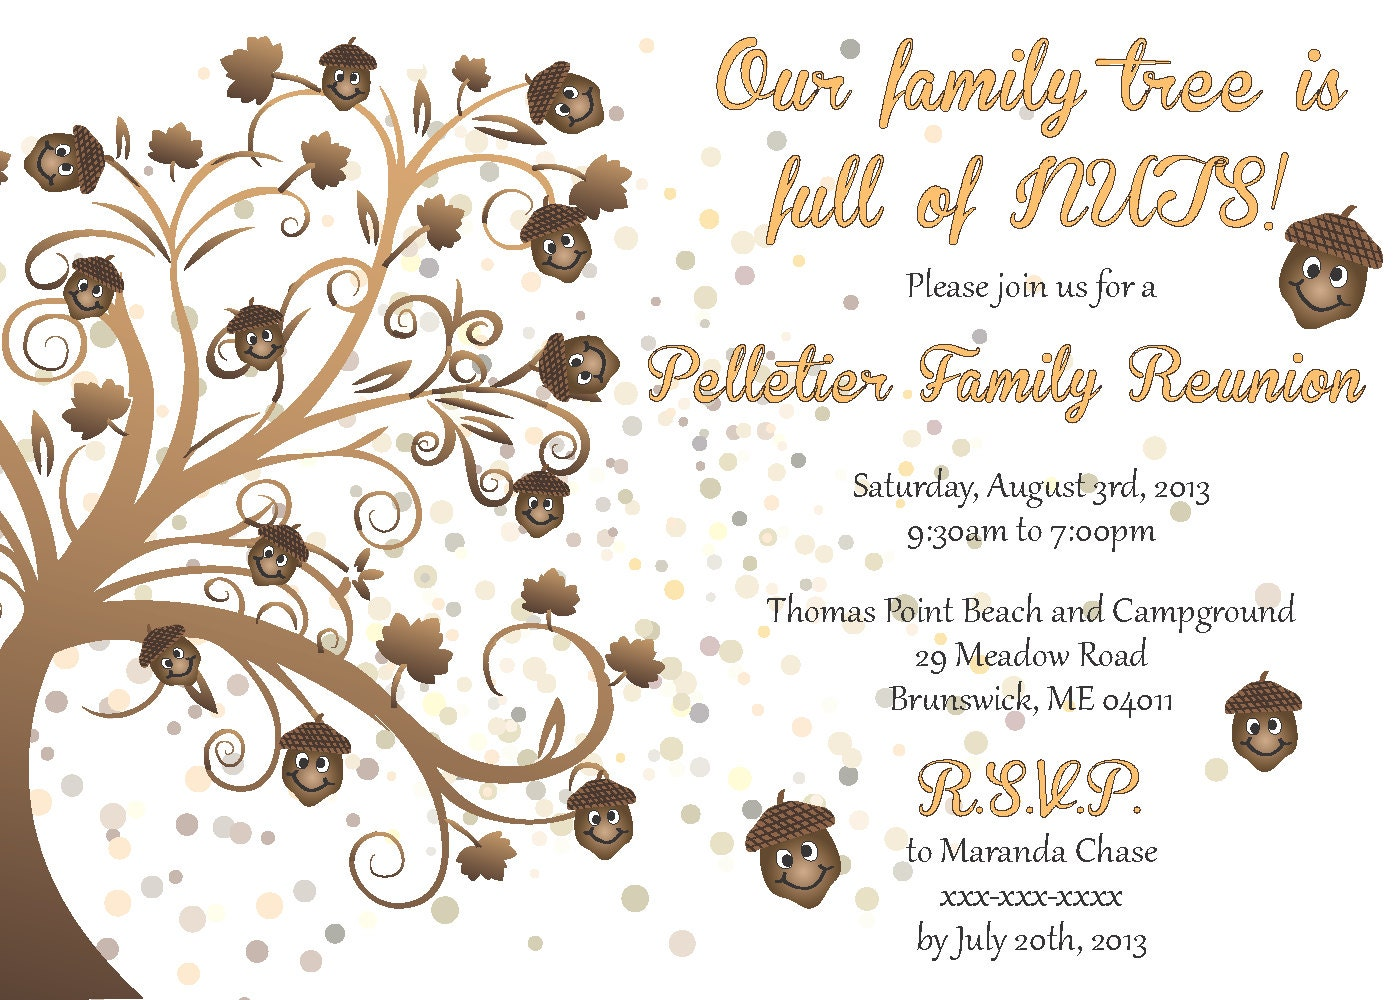 Family gathering invitation wording unitedijawstates zoom family gathering invitation wording stopboris Choice Image